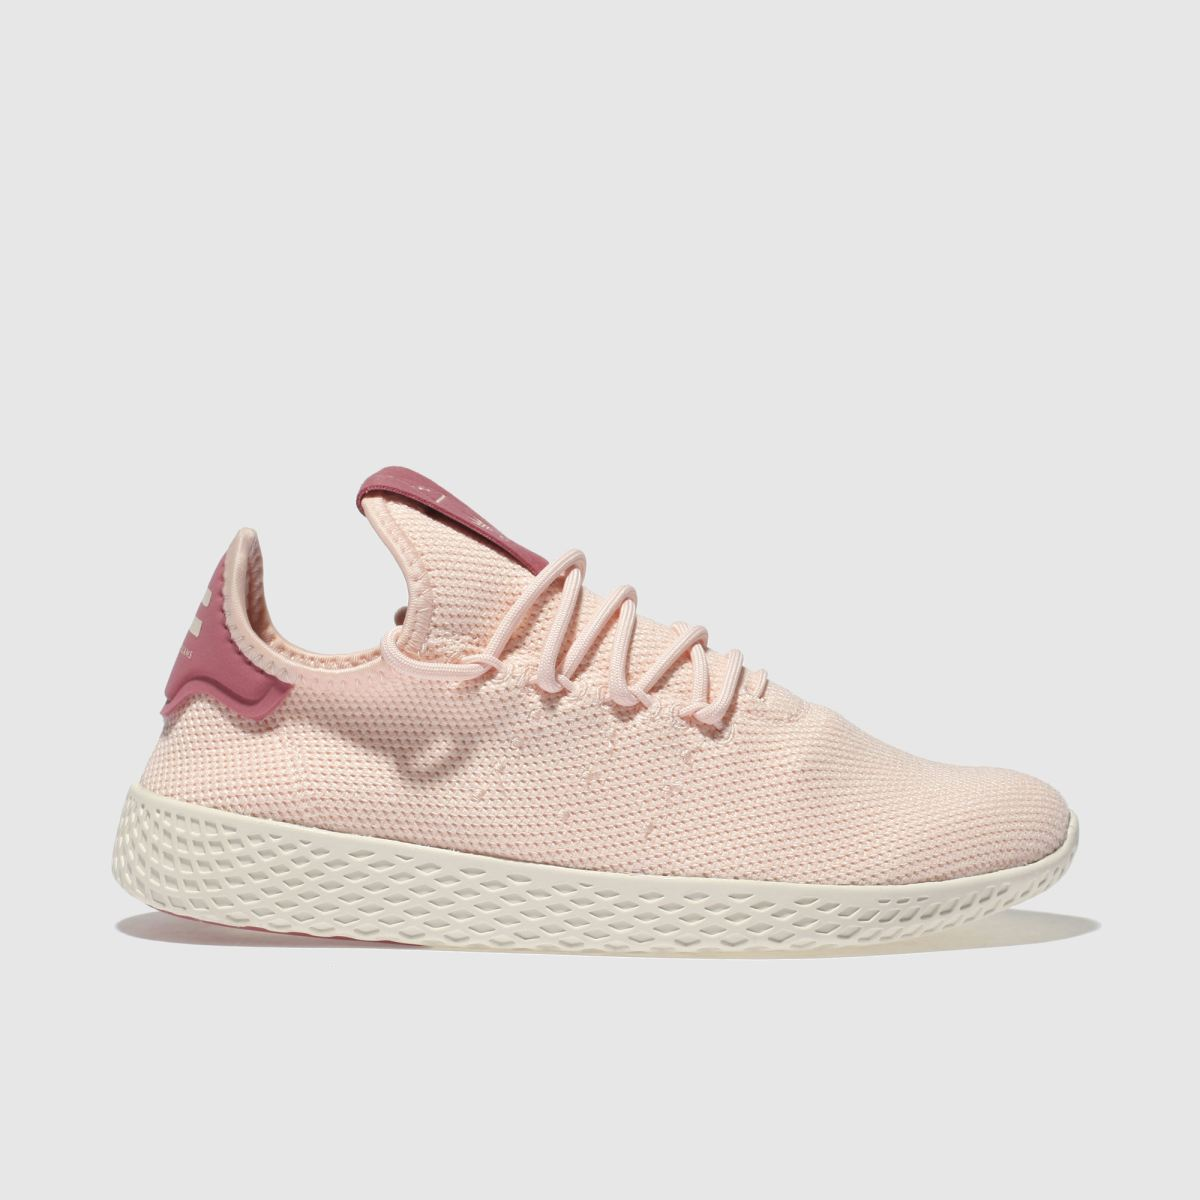 Adidas Pale Pink Pharrell Williams Tennis Hu Trainers